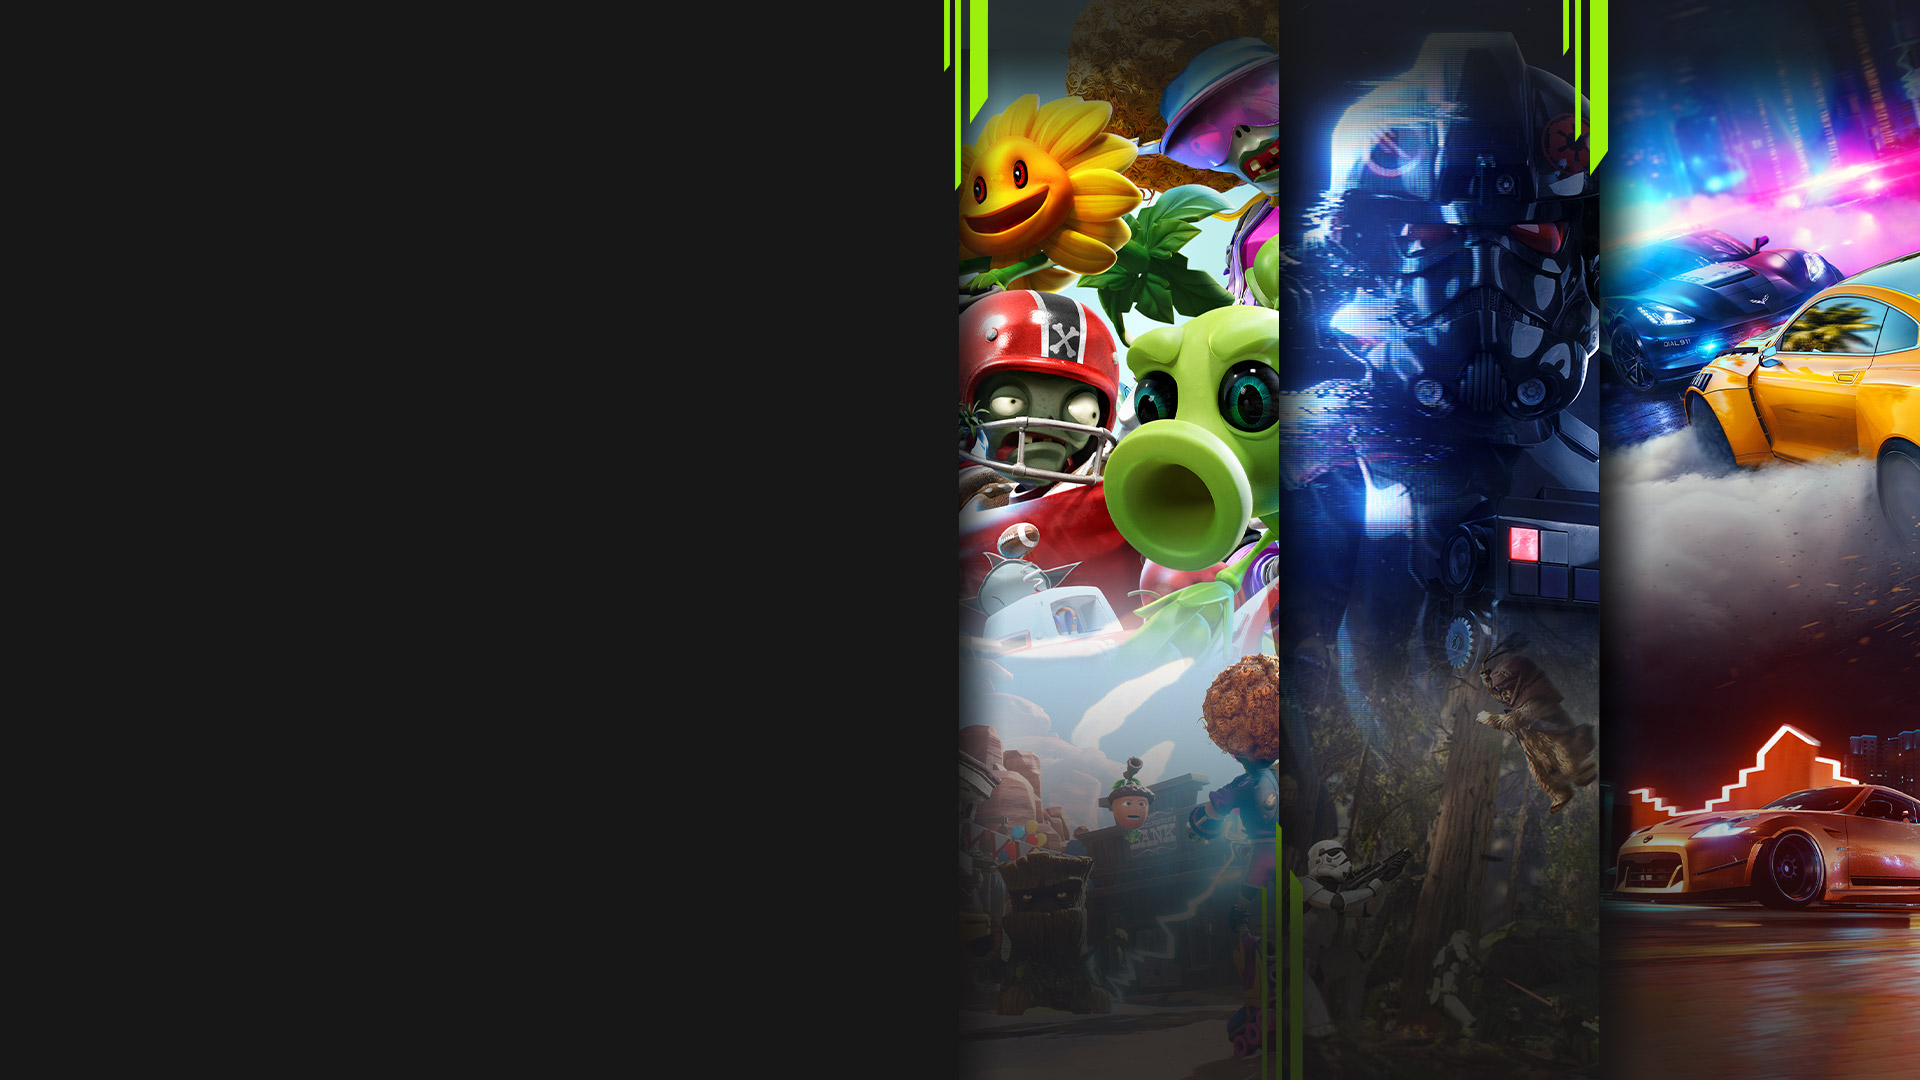 Plants vs. Zombies: Battle for Neighborville, Star Wars Battlefront II ve Need for Speed Heat gibi EA oyunlarının oyun resimleri.